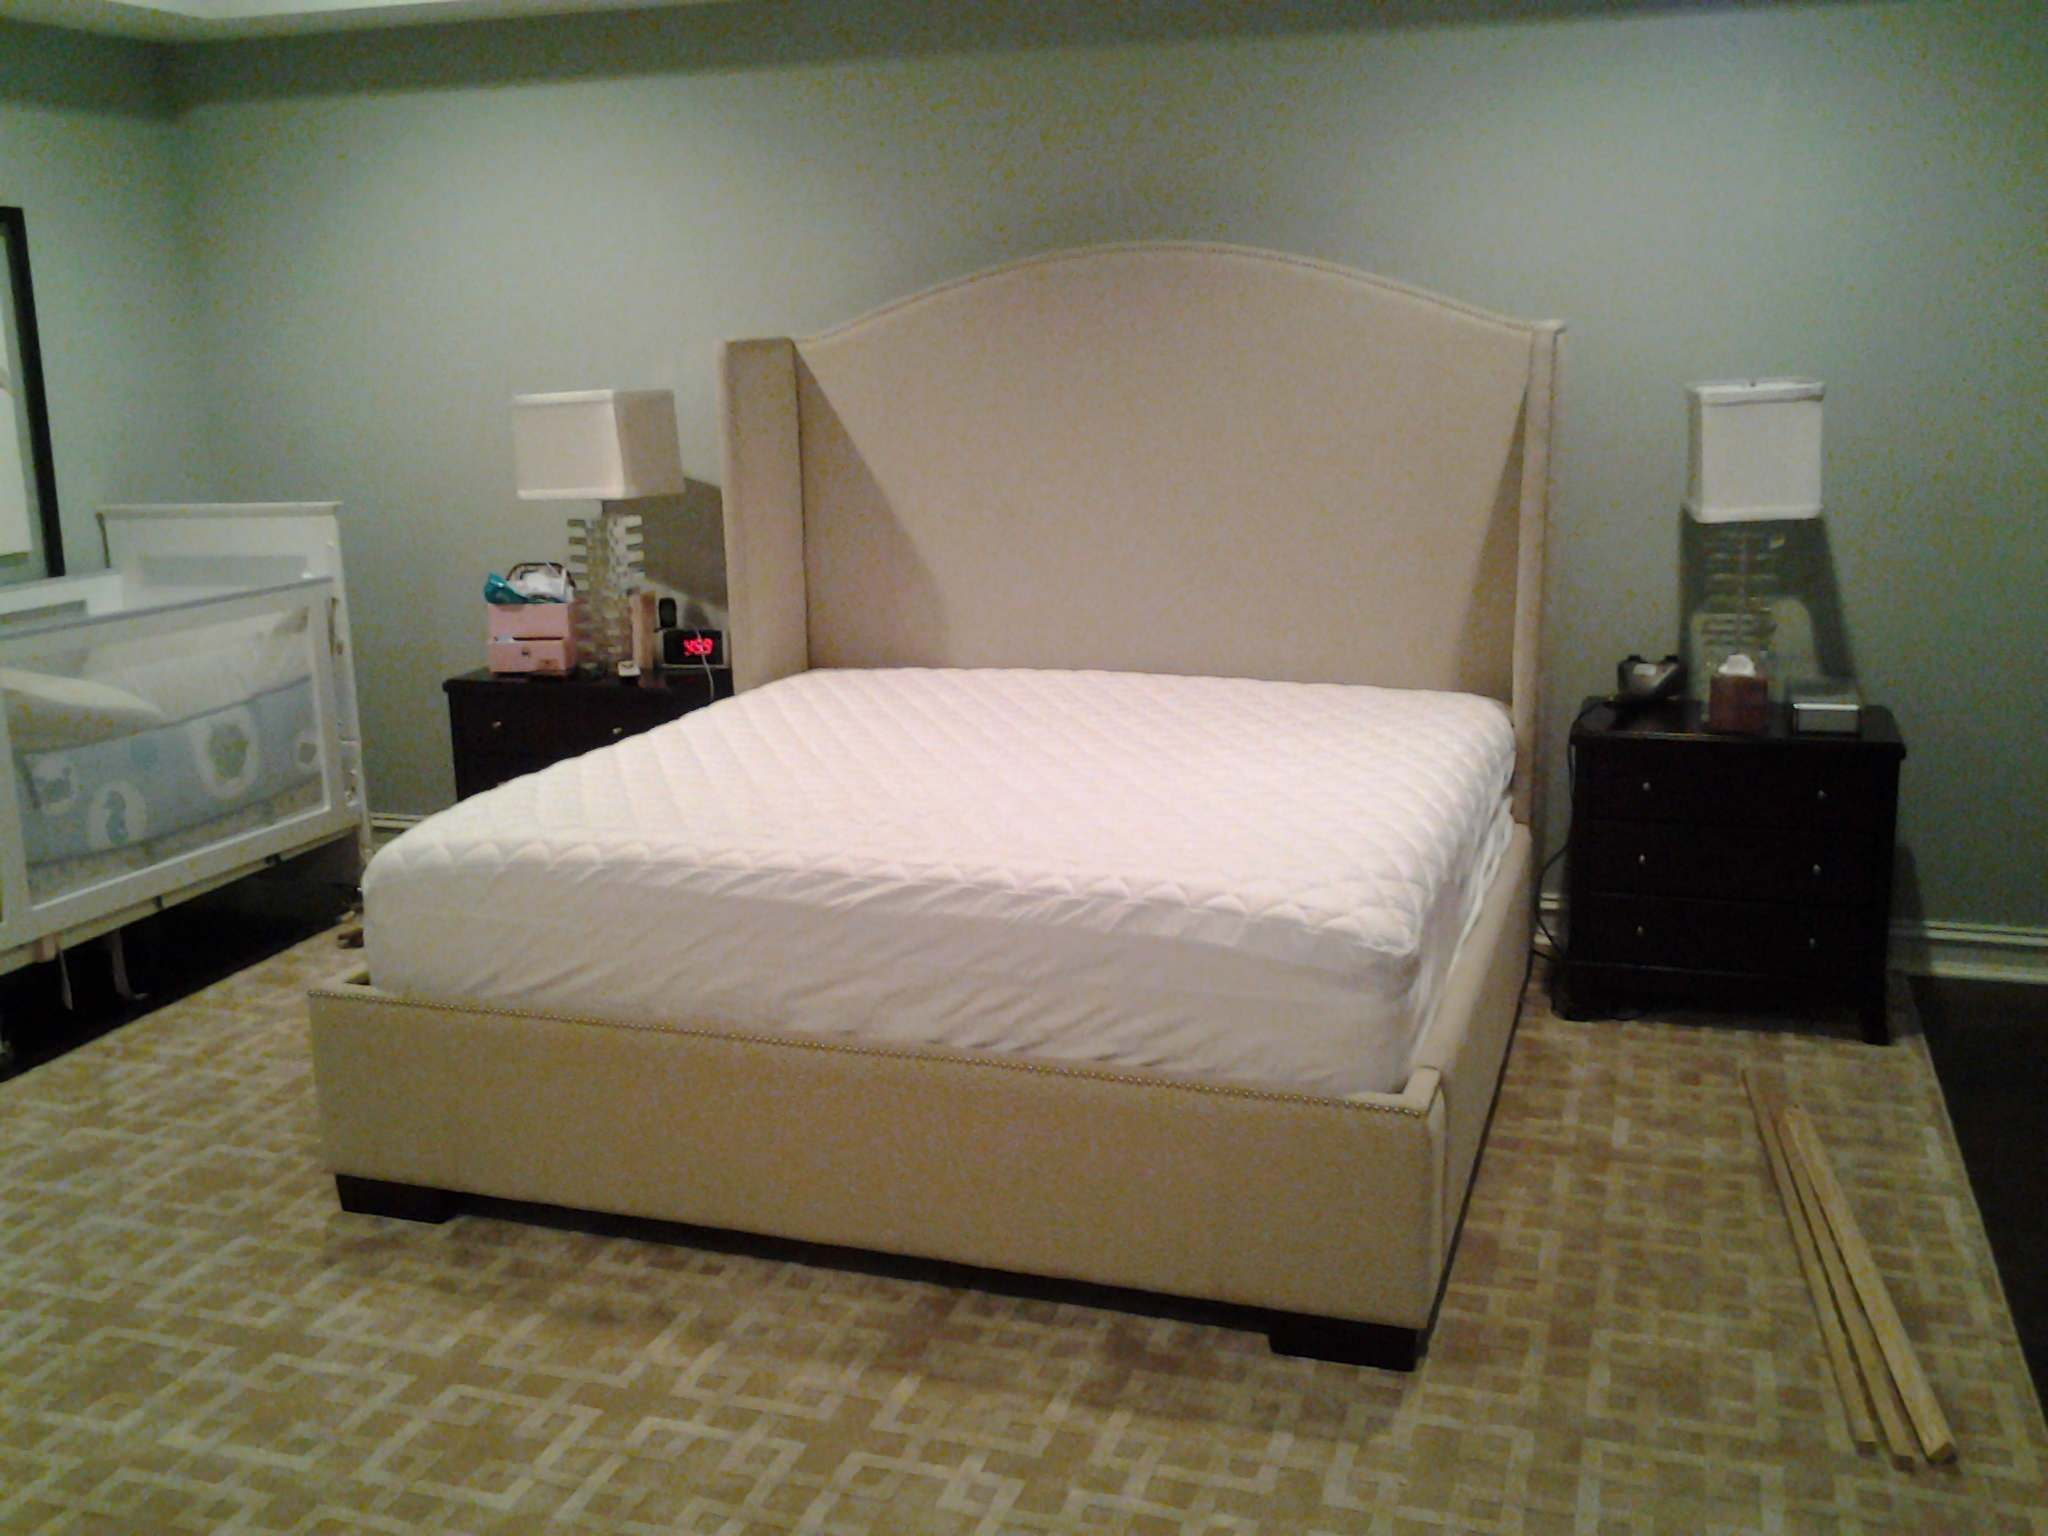 Upholstered bed with nail heads